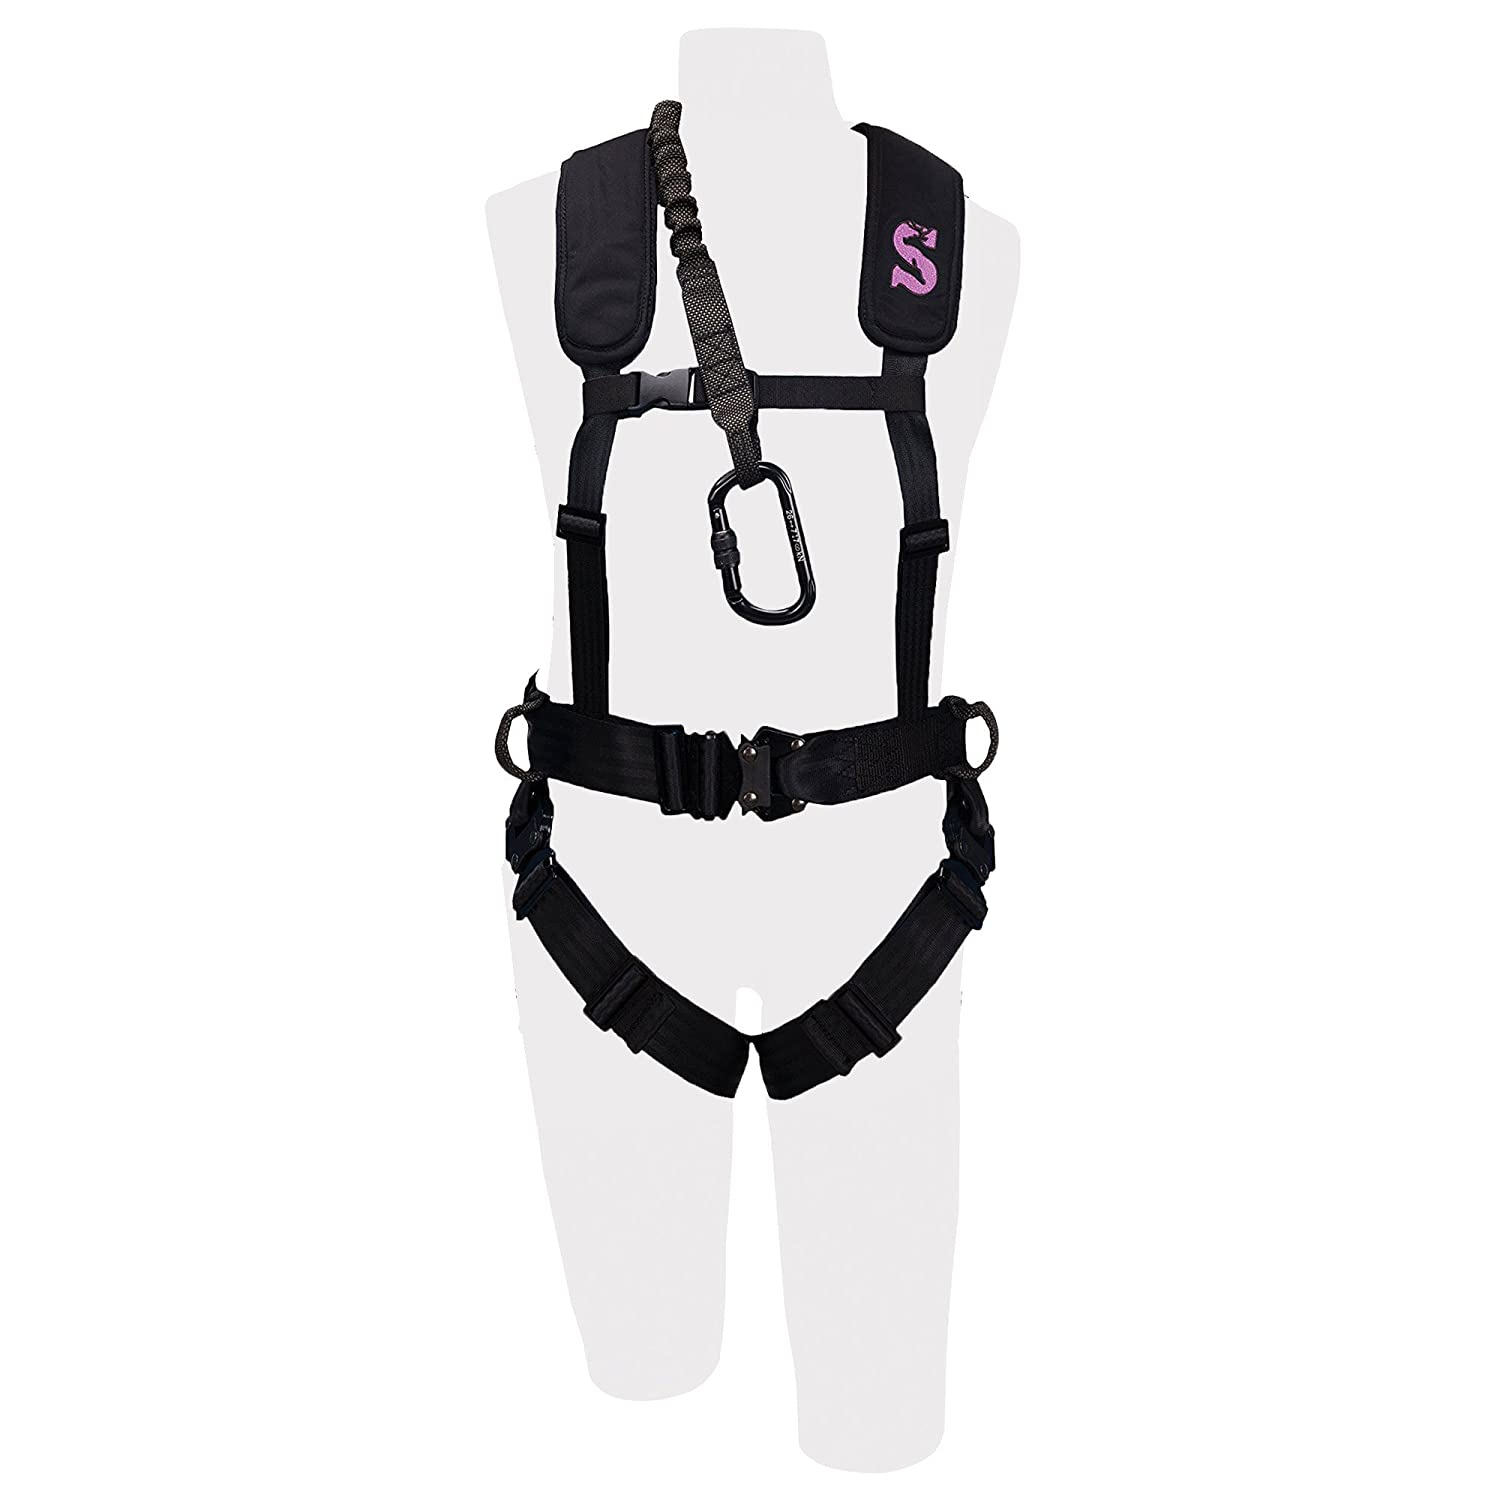 Amazon.com   Summit Treestands Women s Sport Safety Harness   Sports    Outdoors 5085a9f00